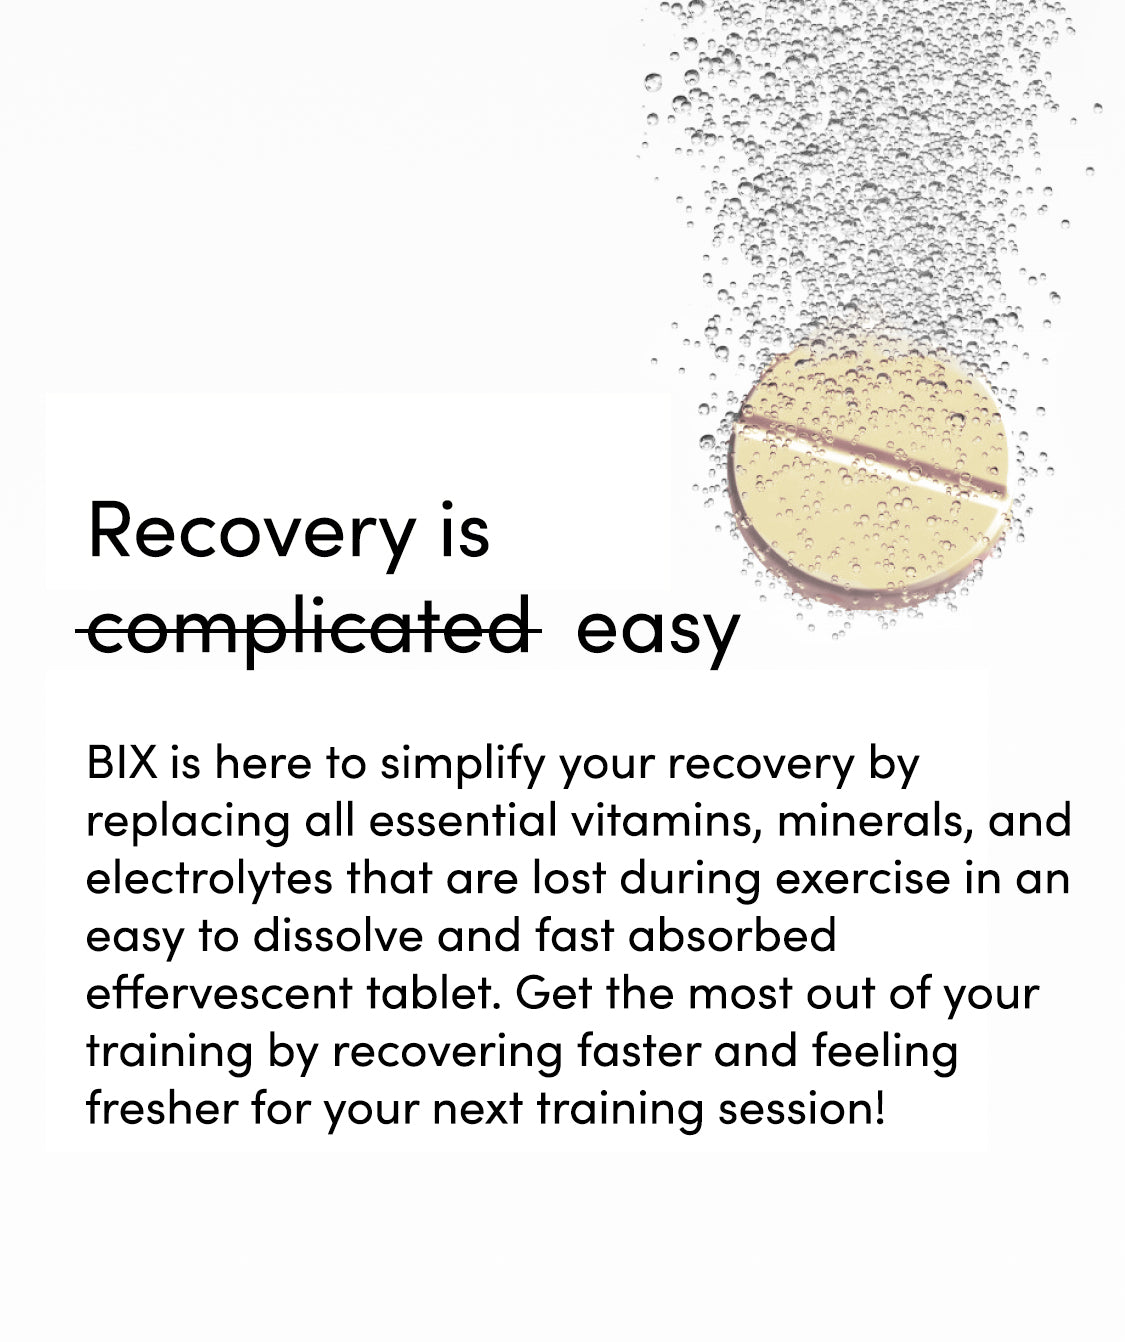 Hydration tablets to help recovery and performance for runners and athletes